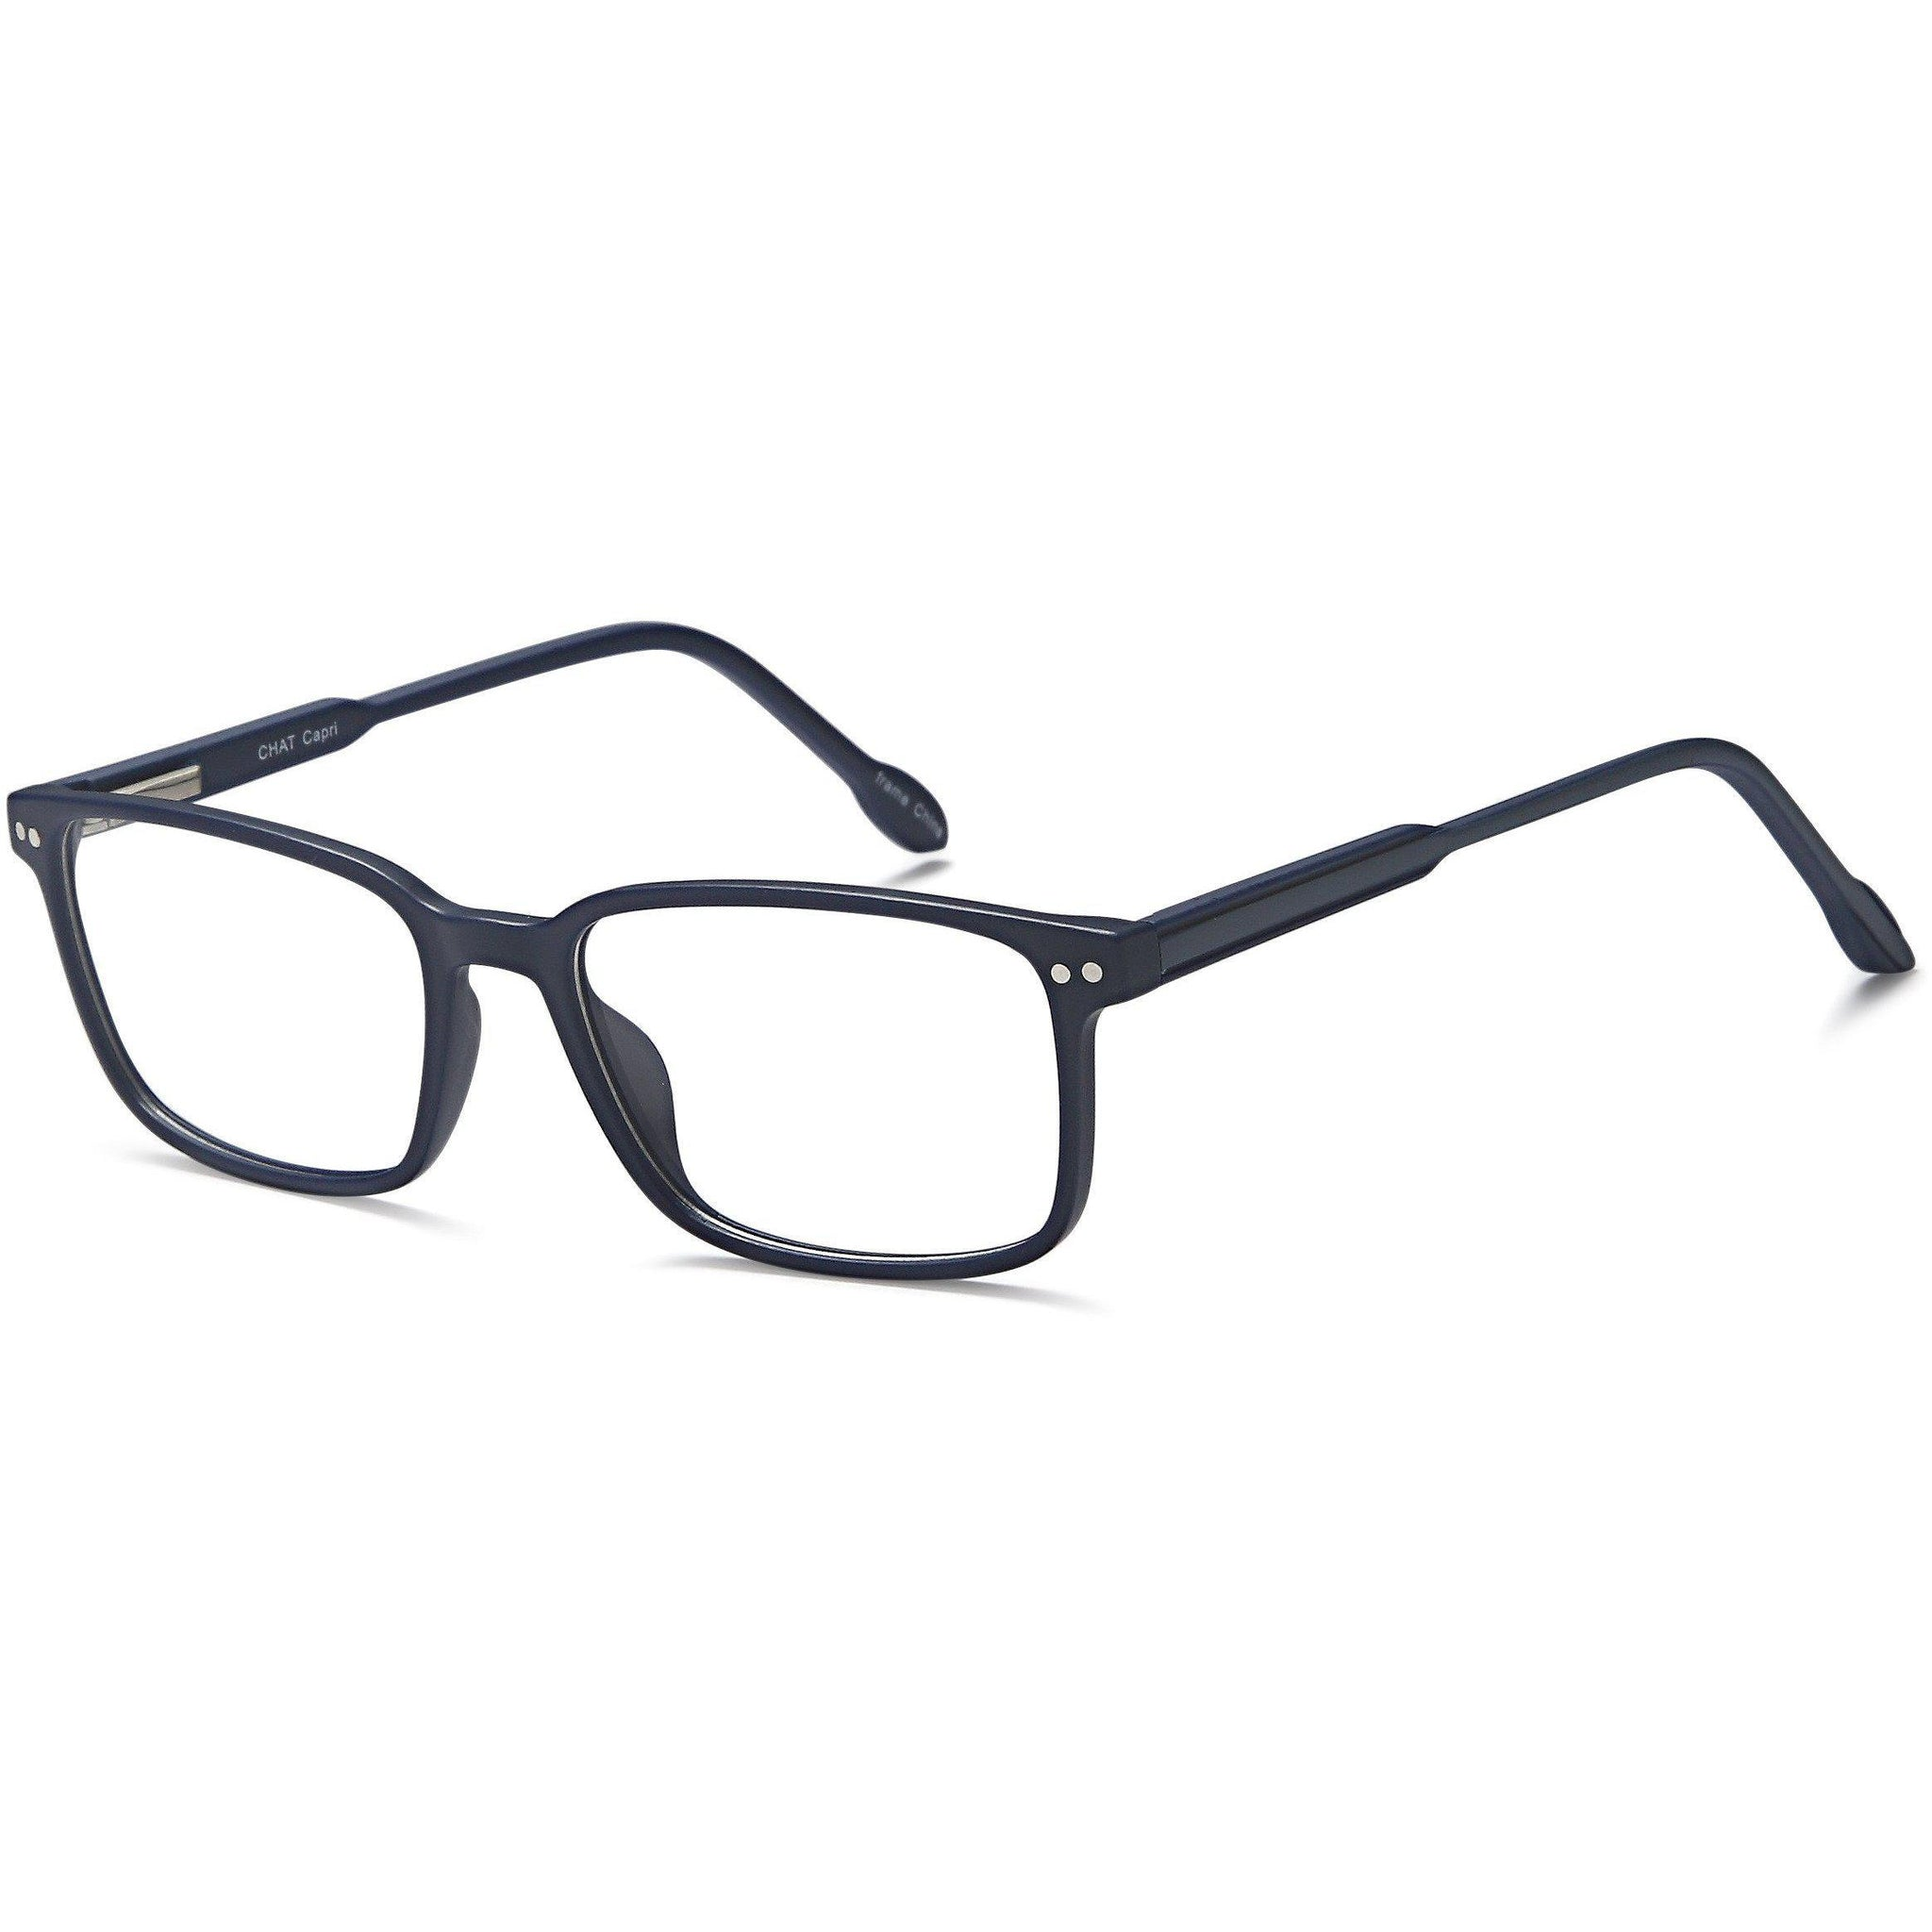 GEN Y Prescription Glasses CHAT Eyeglasses Frame